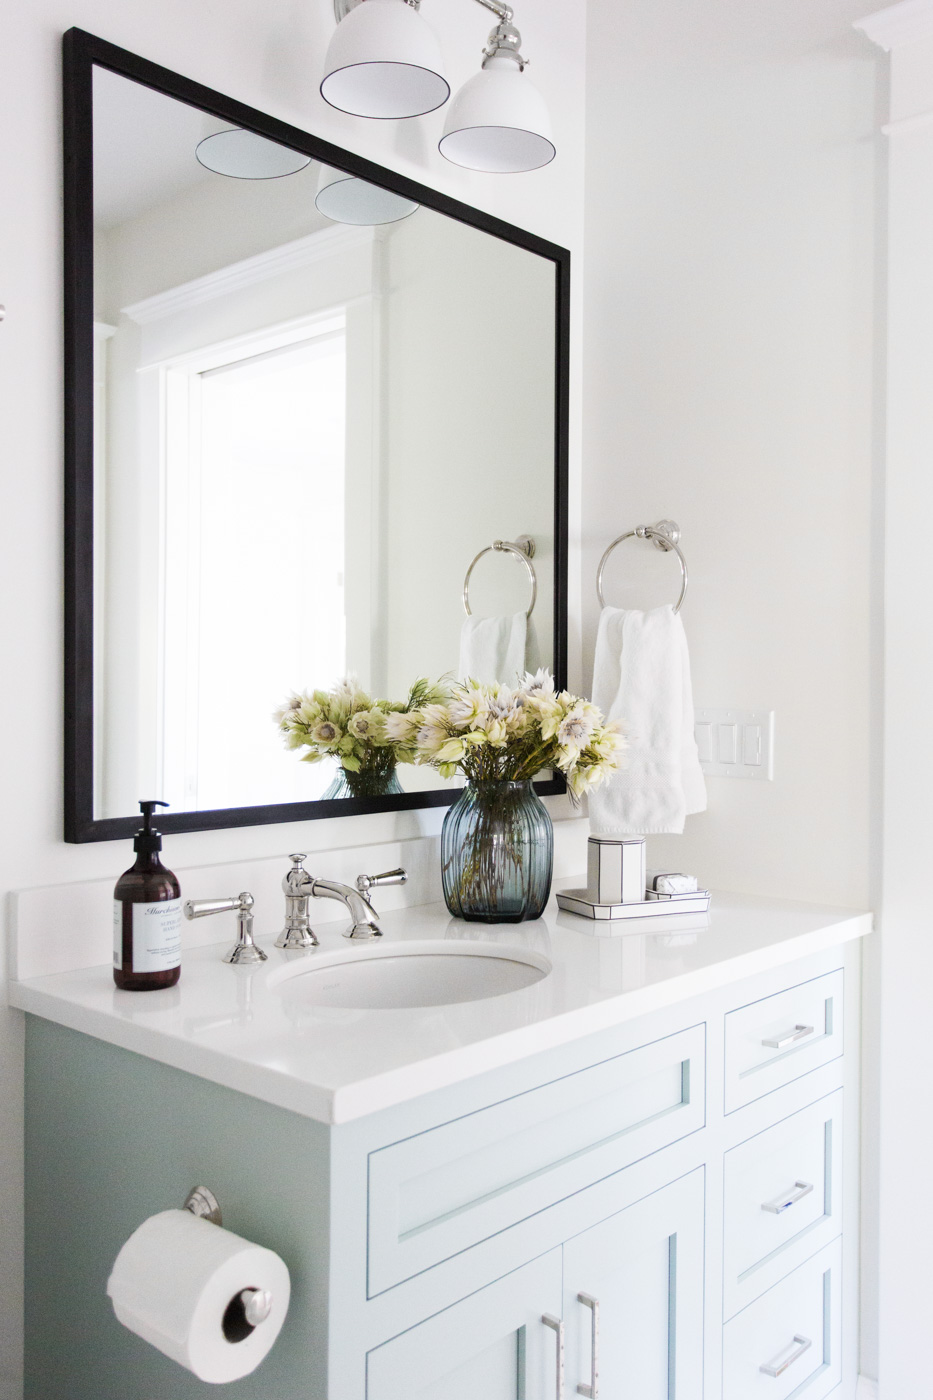 Large mirror behind white bathroom vanity